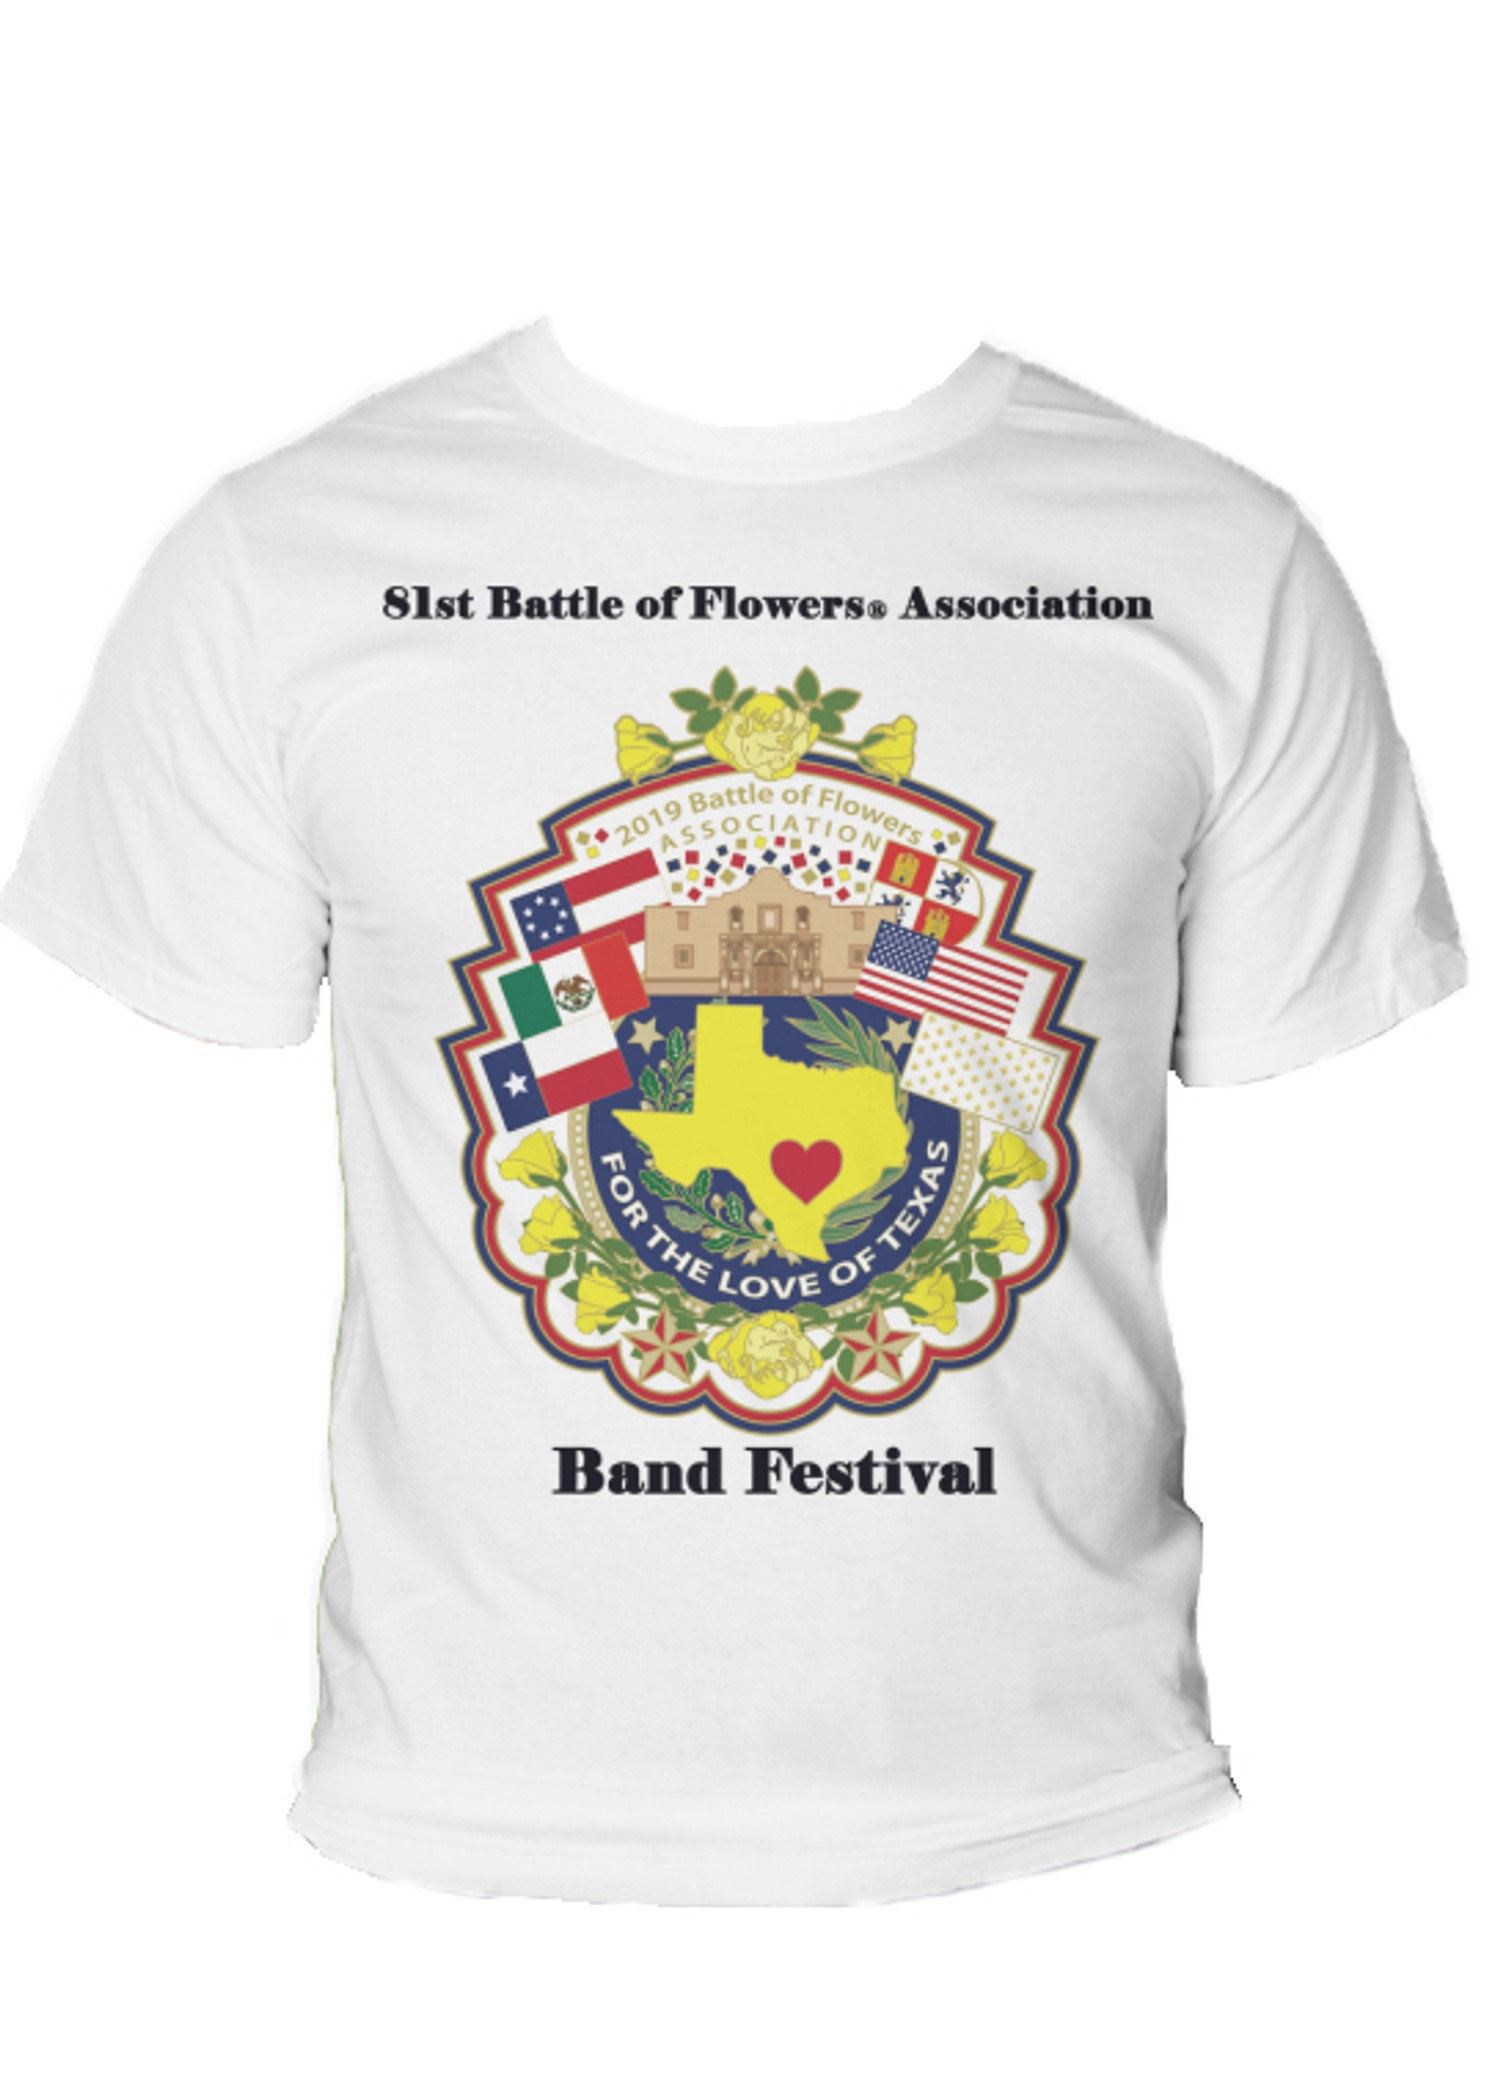 Battle of Flowers® Association 81st Band Festival 2019 Shirt